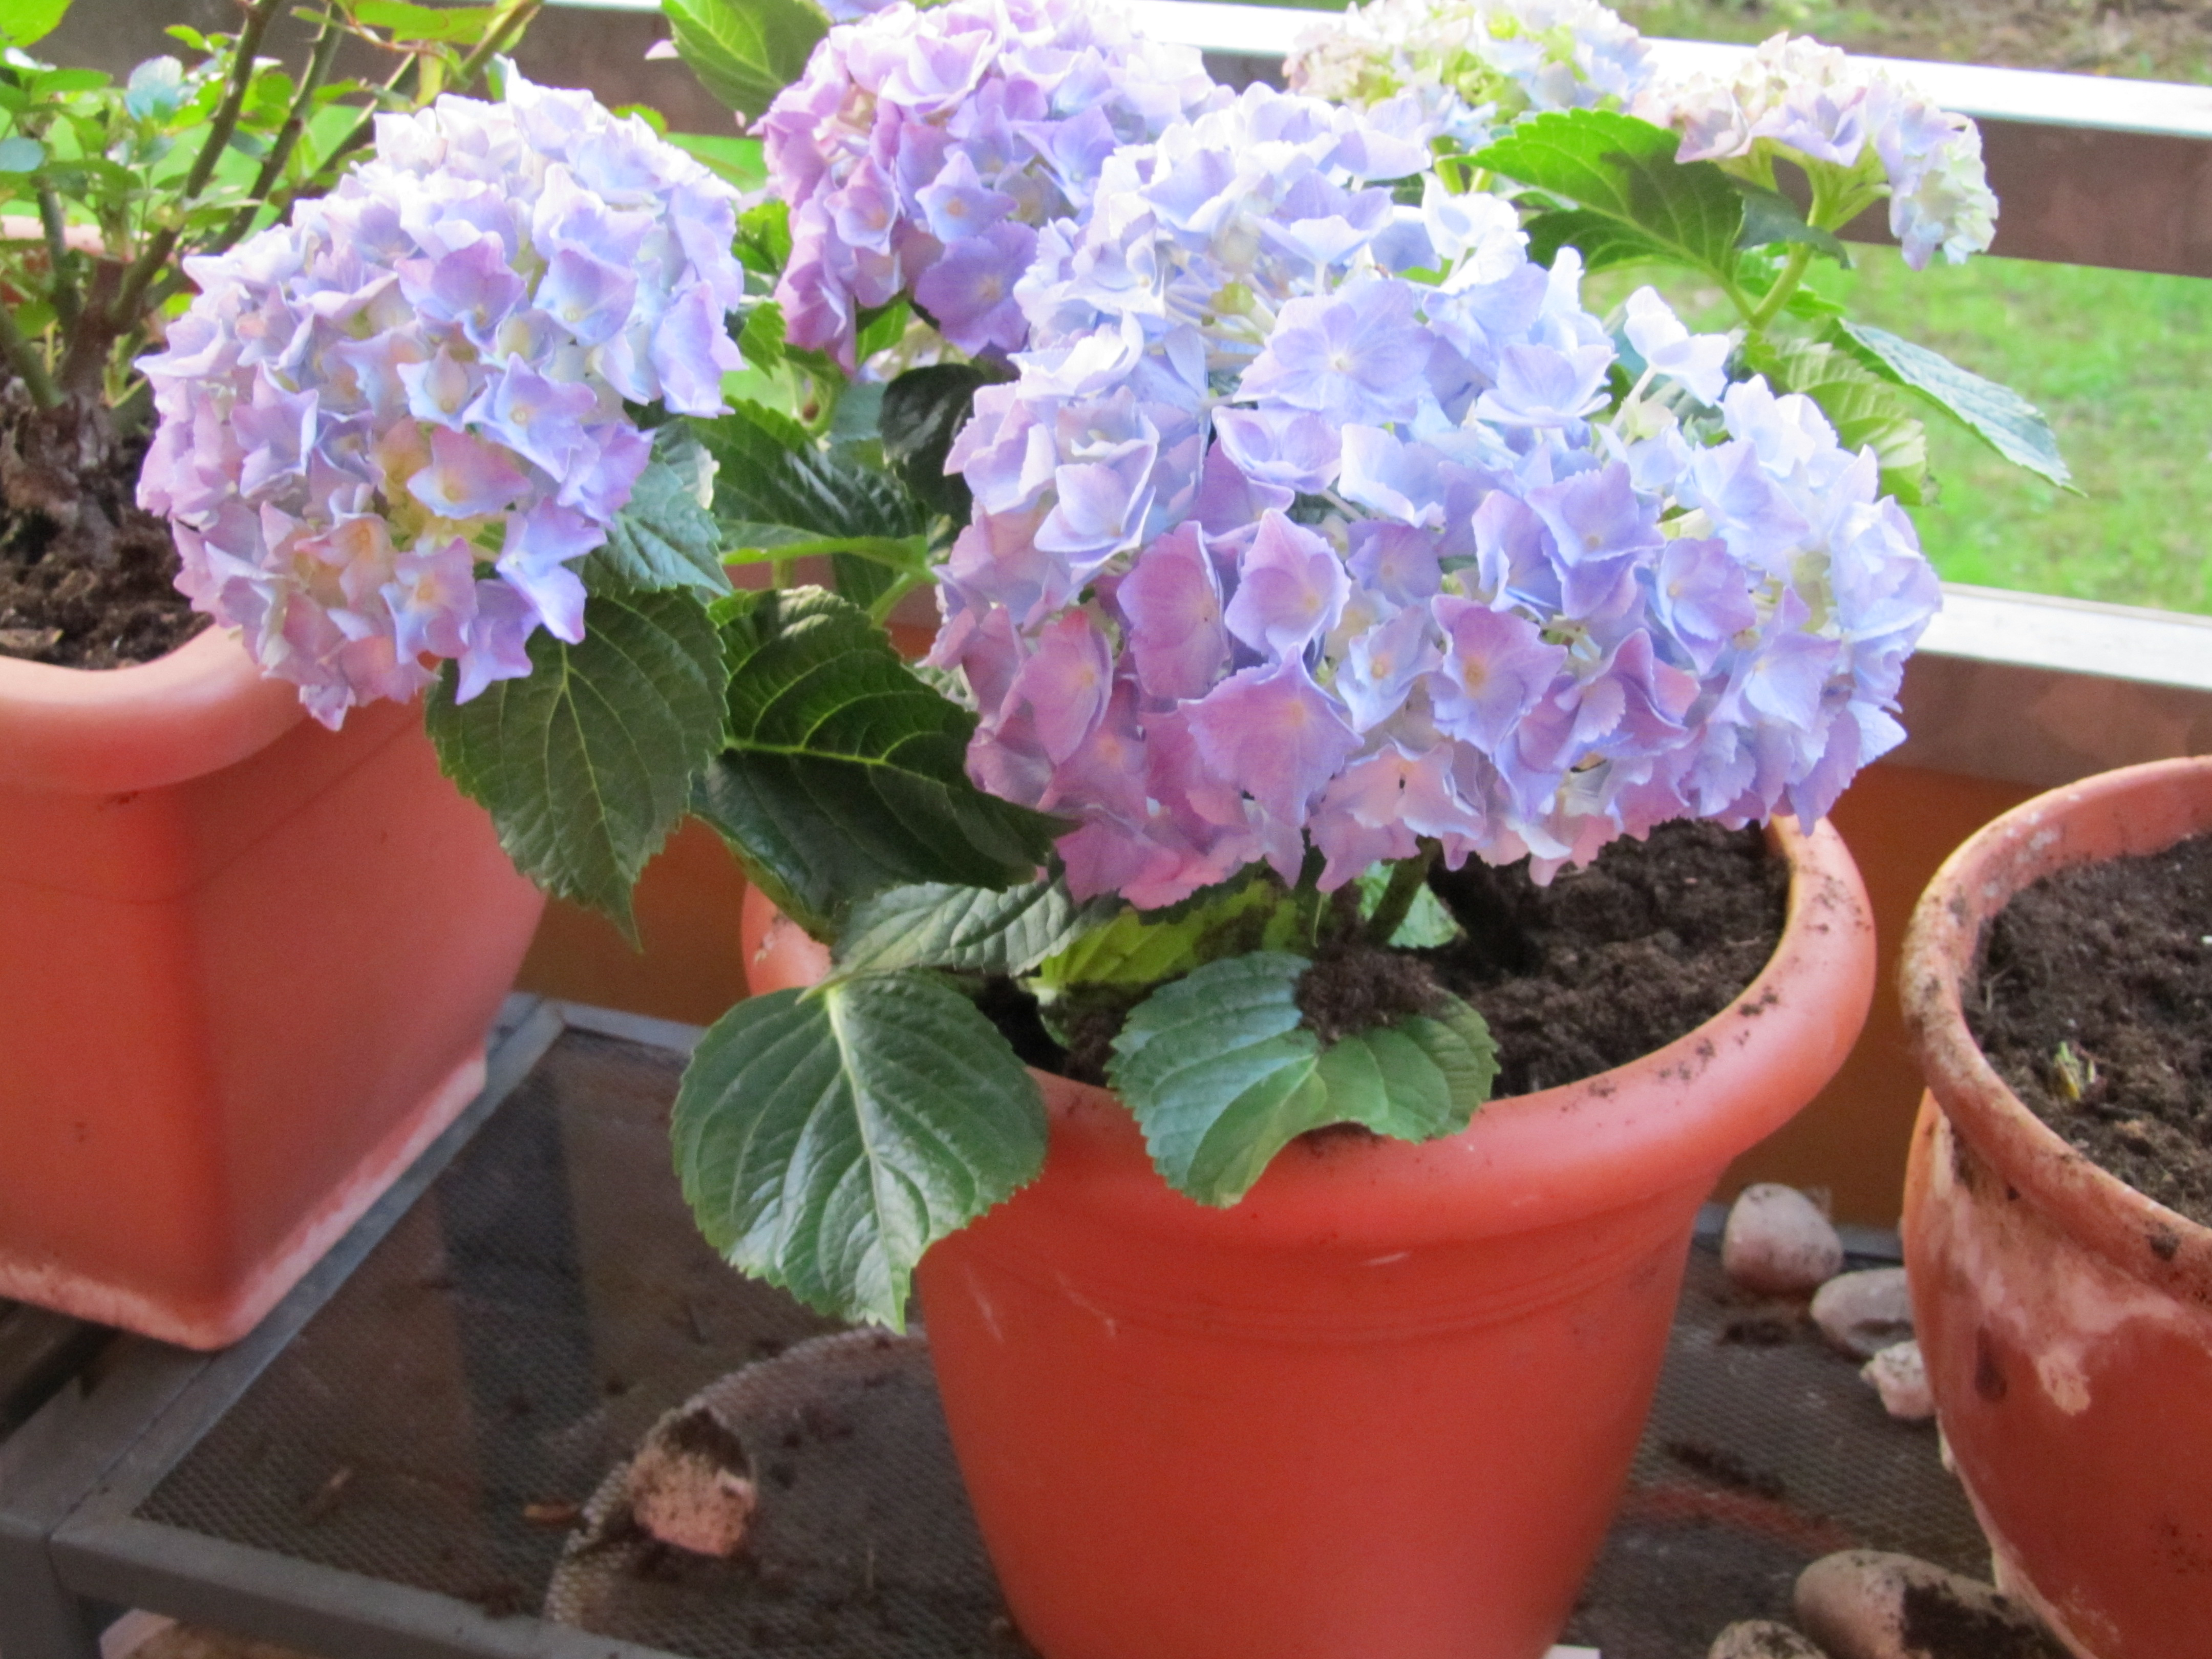 Hydrangea flower coloring pages - Growing Hydrangea In Pot